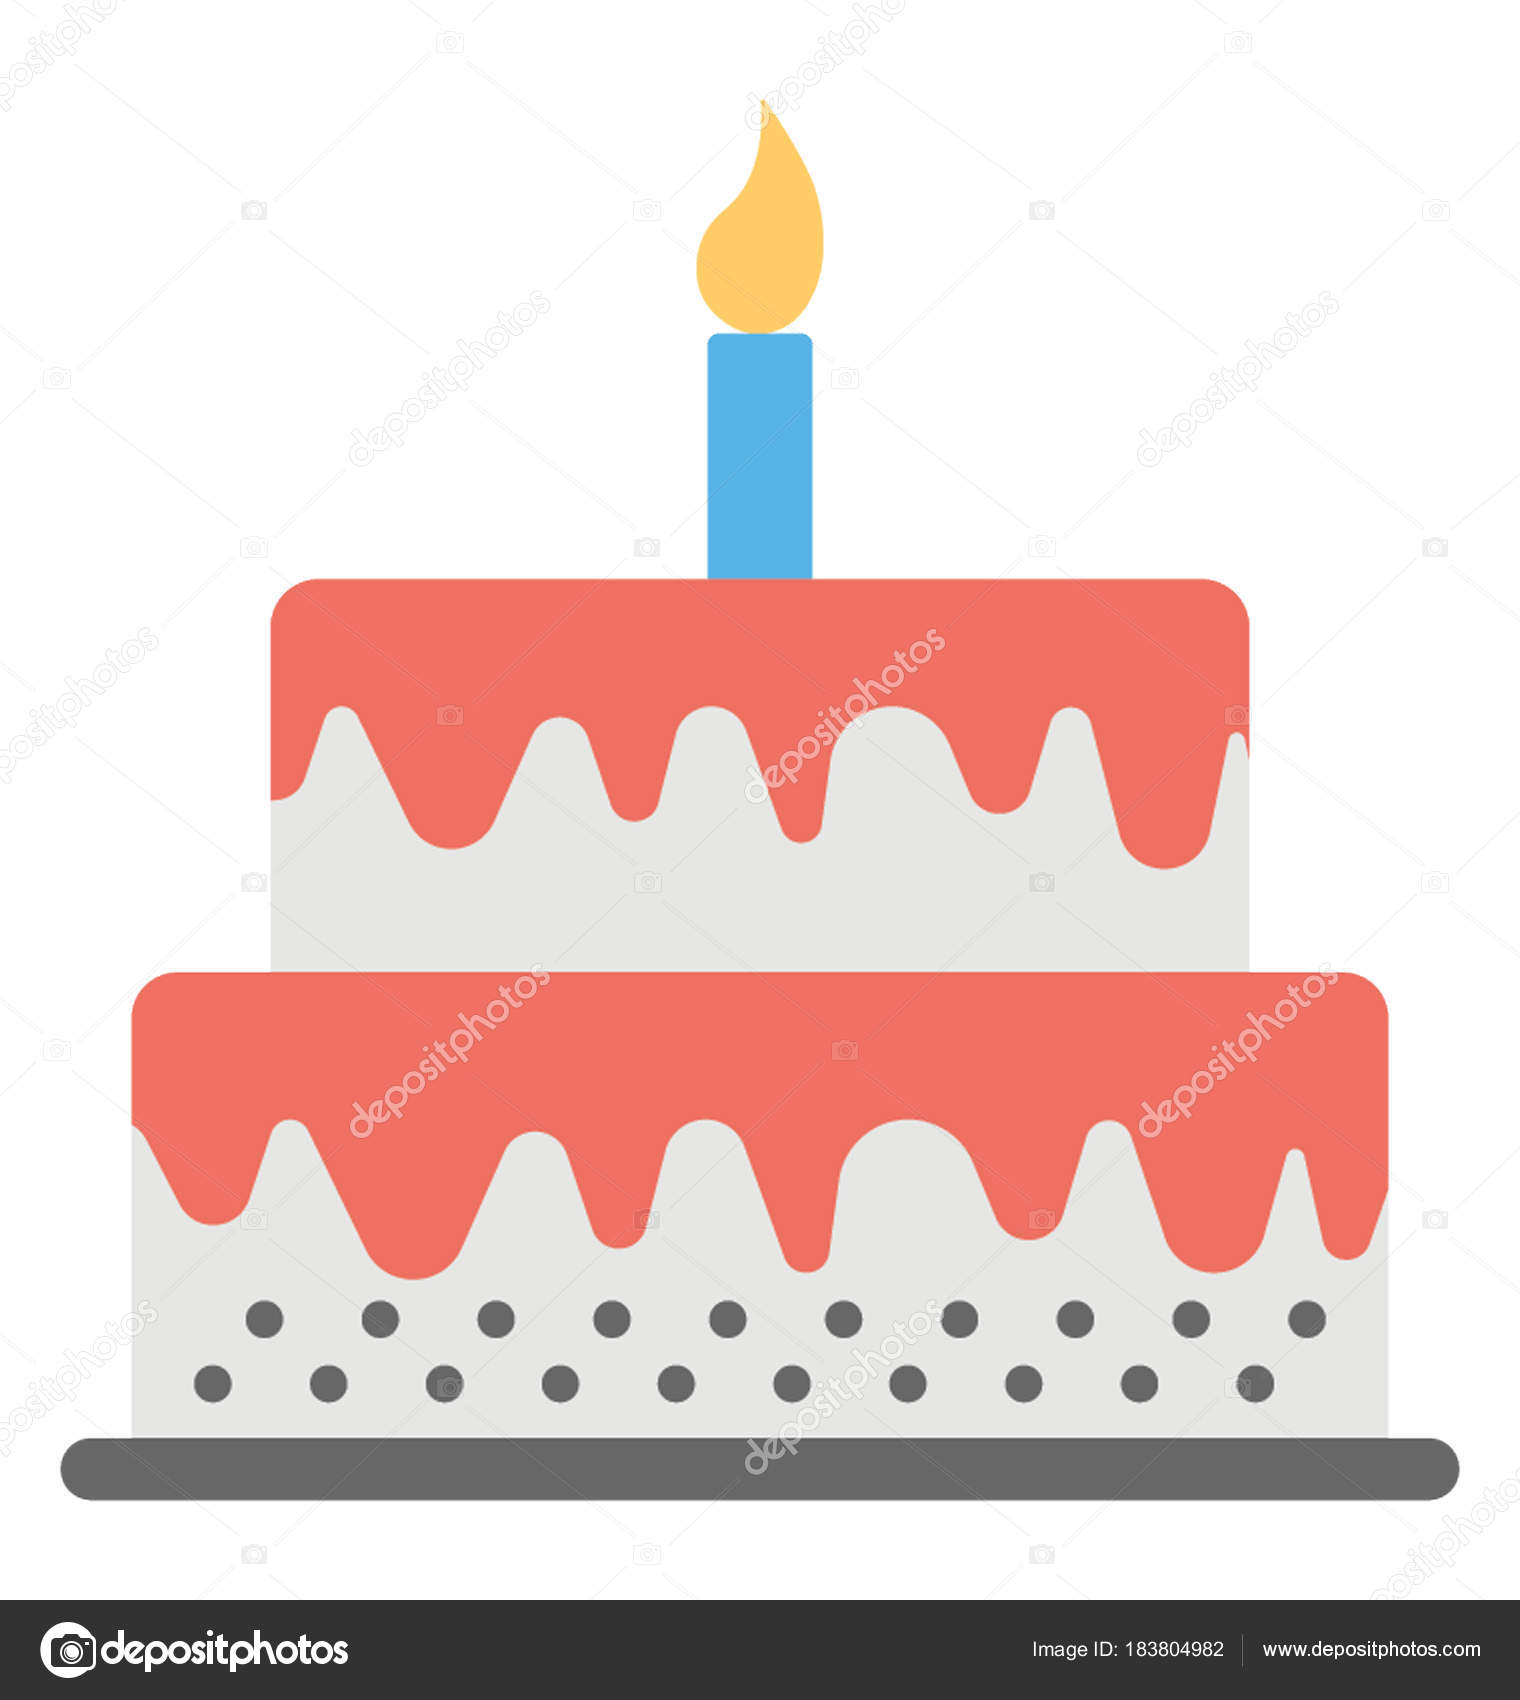 Strange Giant Birthday Cake Flat Icon Giant Birthday Cake Stock Vector Funny Birthday Cards Online Fluifree Goldxyz